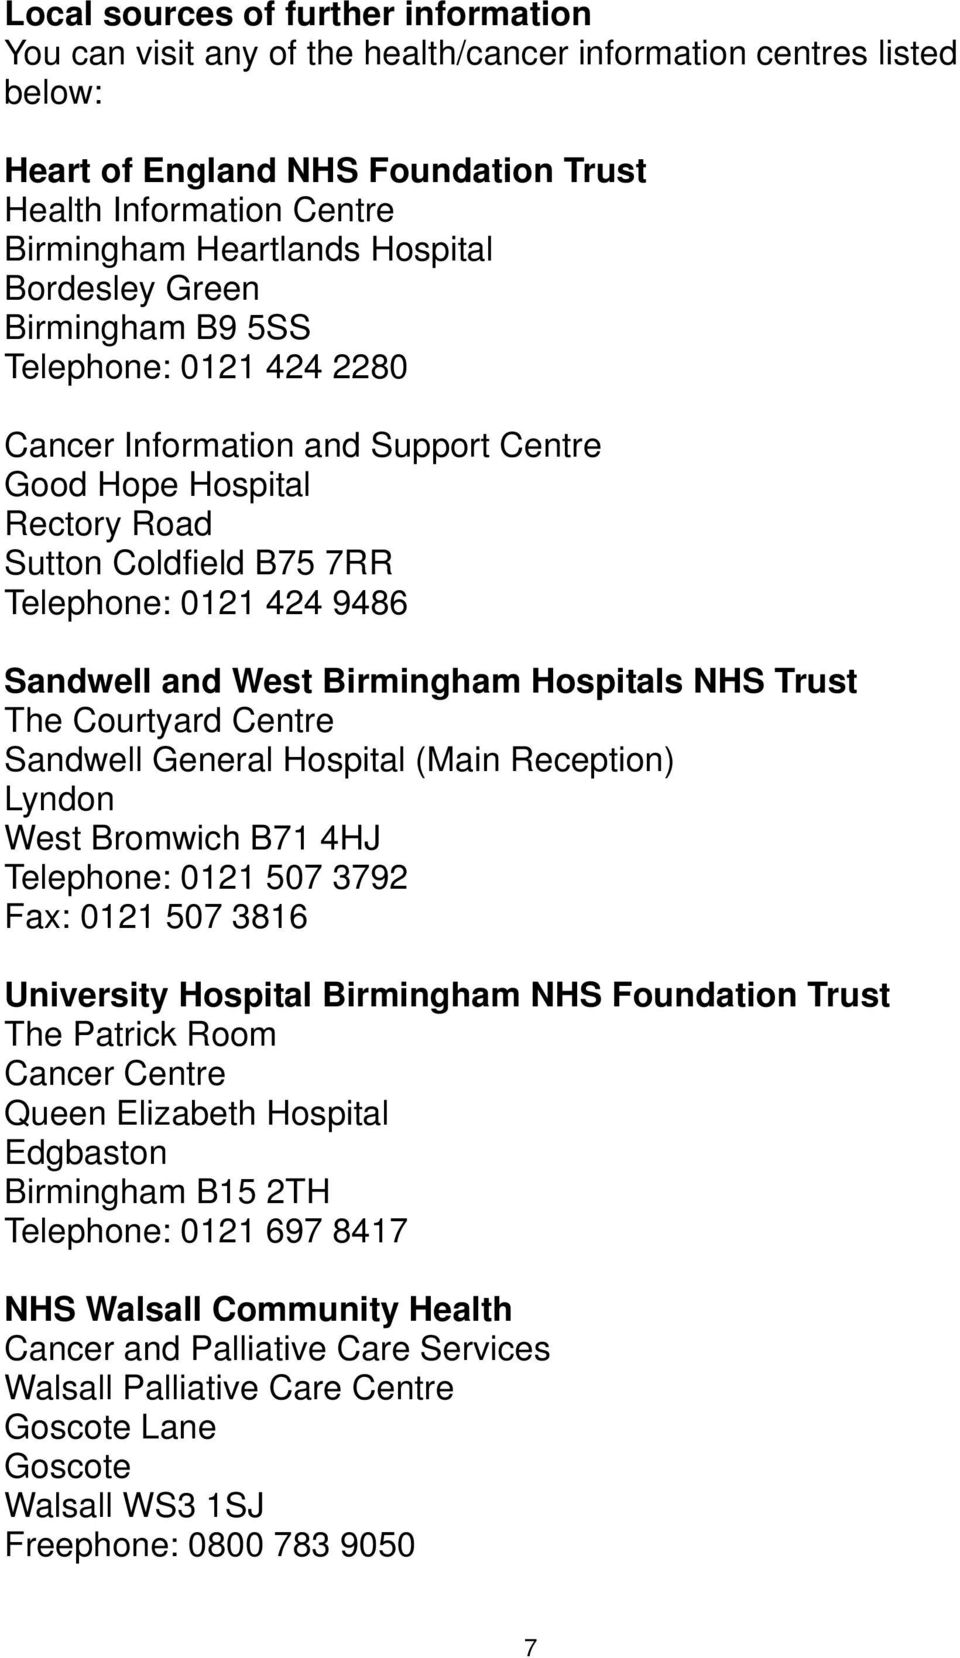 and West Birmingham Hospitals NHS Trust The Courtyard Centre Sandwell General Hospital (Main Reception) Lyndon West Bromwich B71 4HJ Telephone: 0121 507 3792 Fax: 0121 507 3816 University Hospital